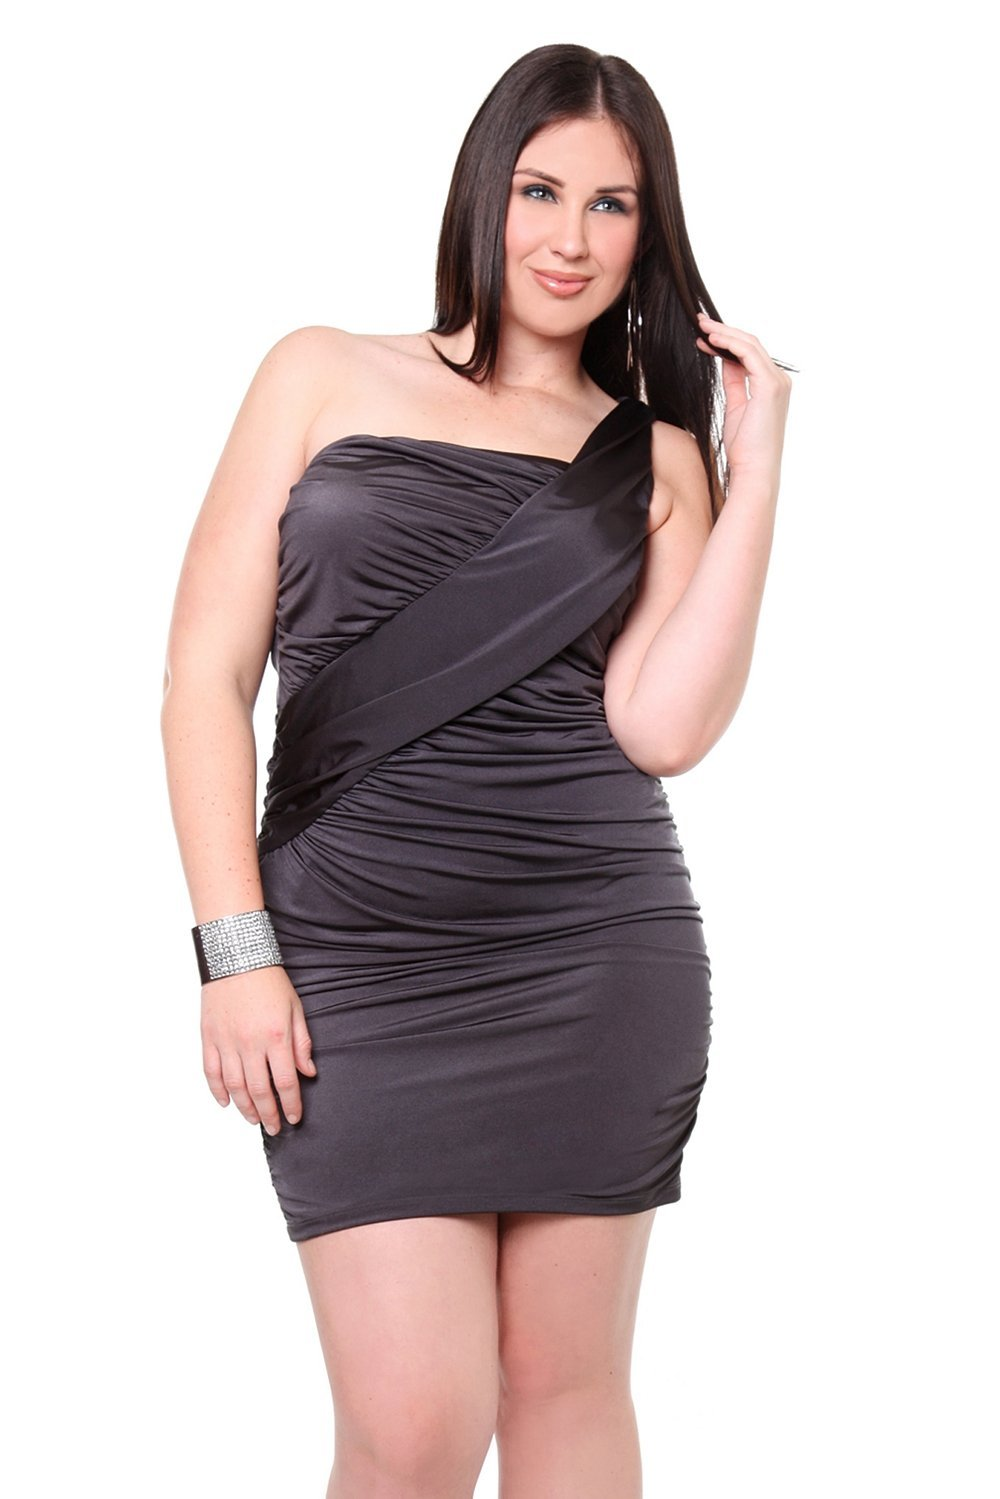 Plus Size Club Dresses | DressedUpGirl.com